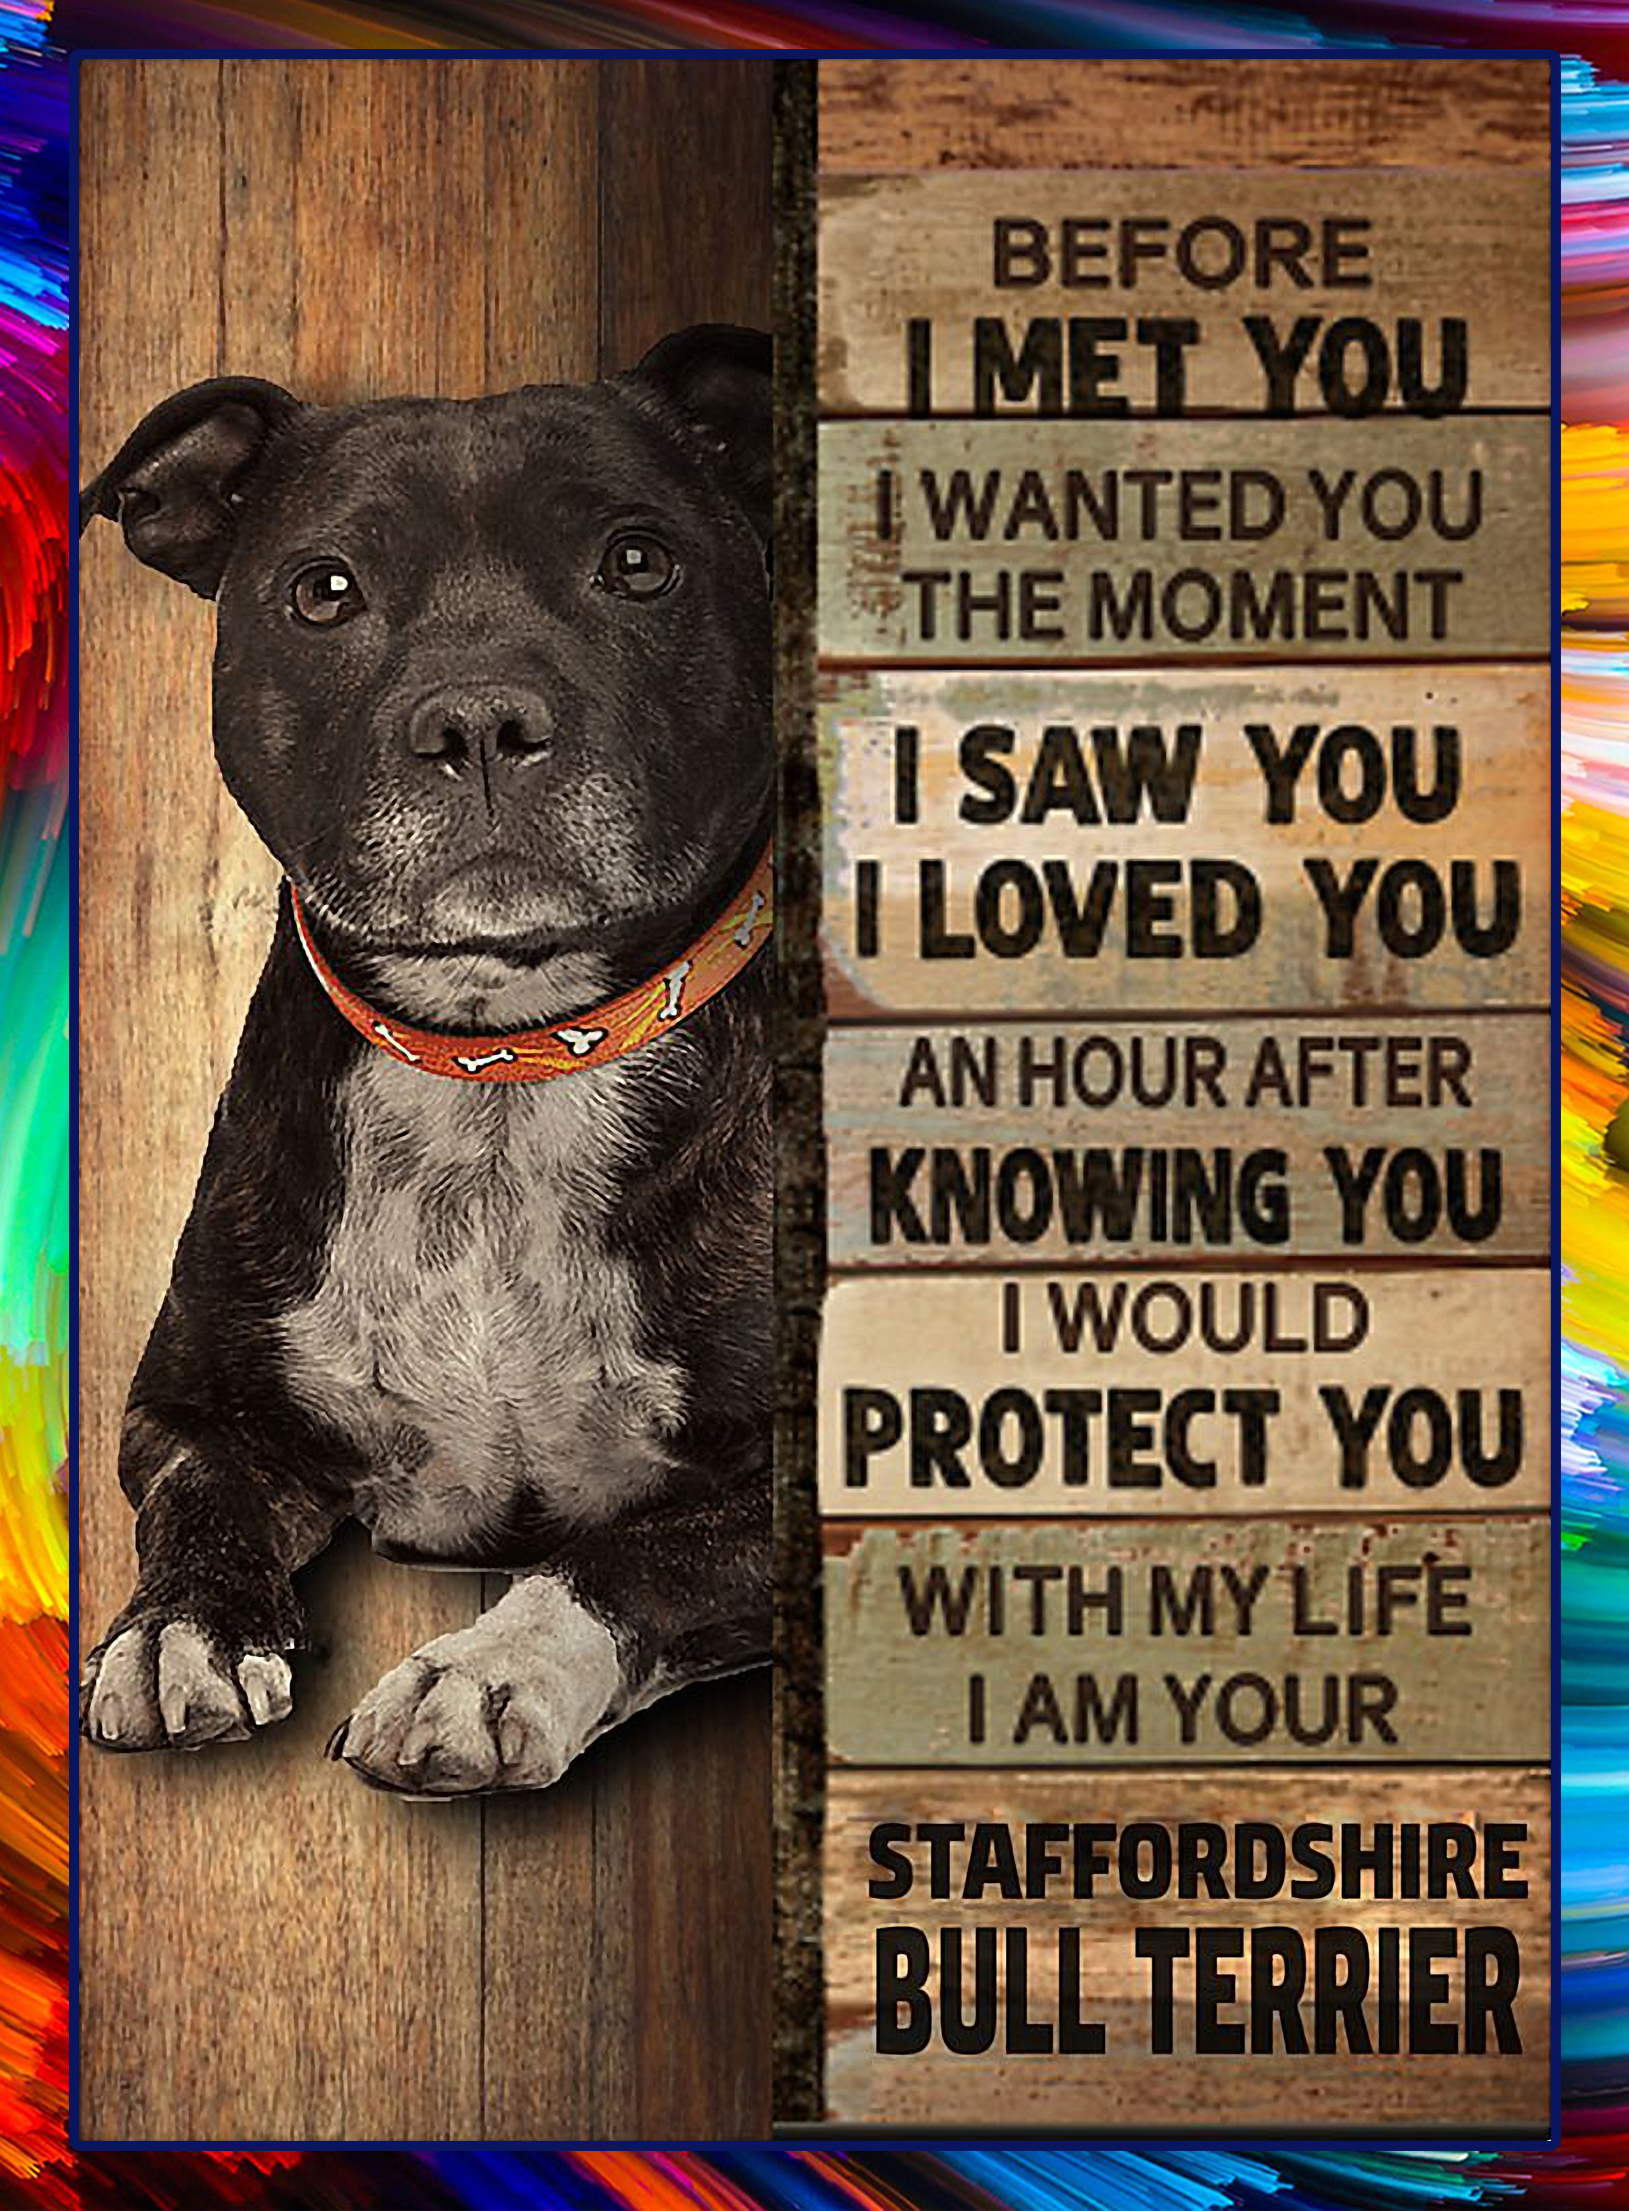 Staffordshire bull terrier before I met you poster